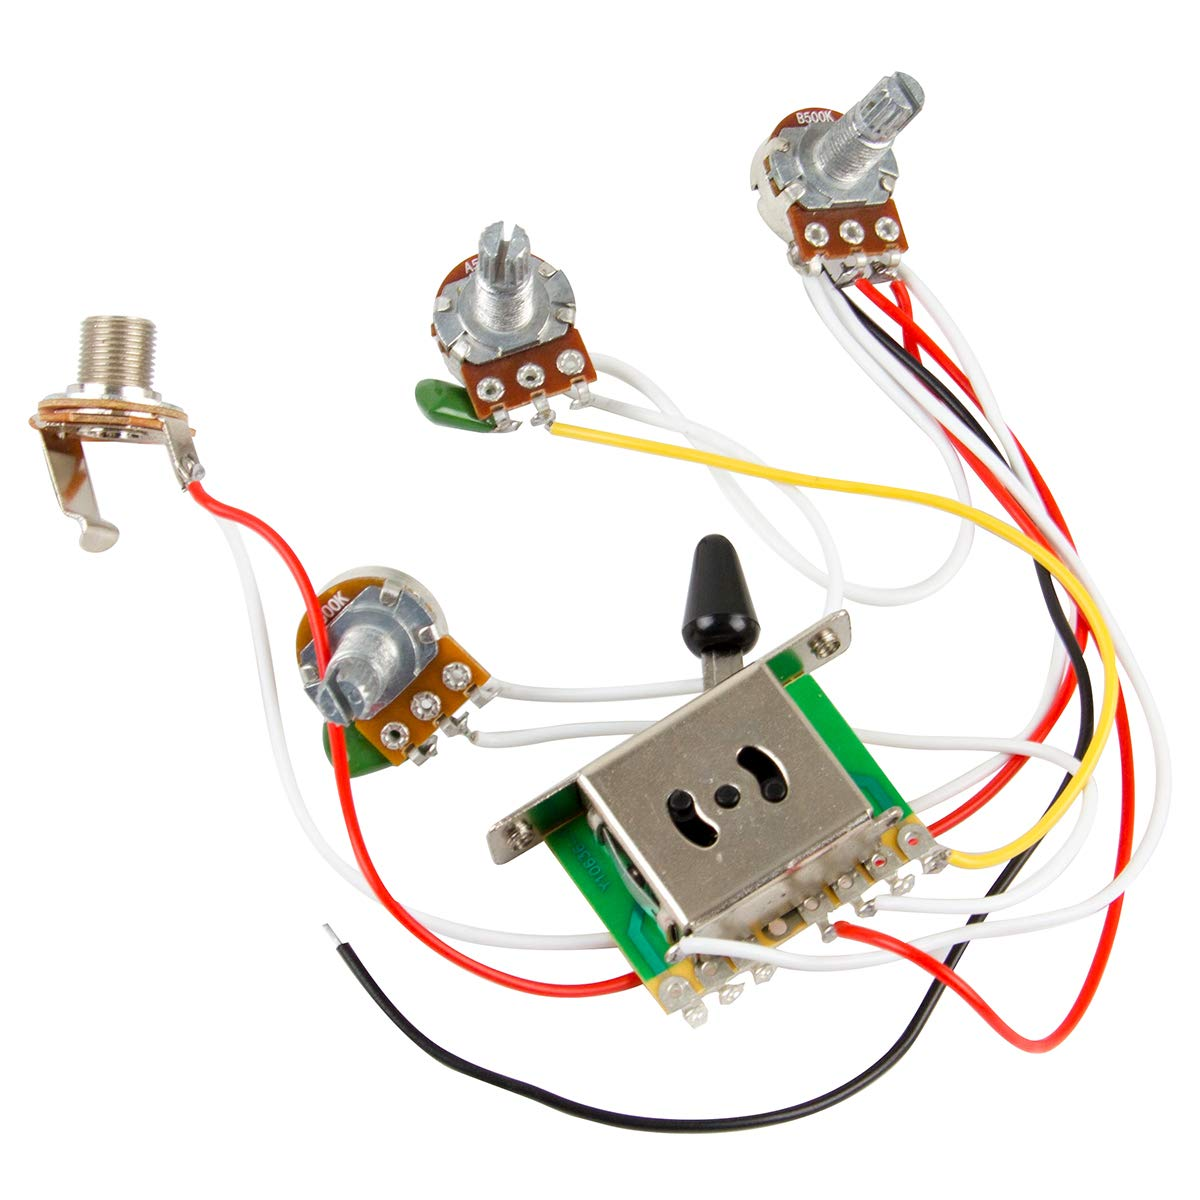 New High Quality Kmise® Wiring Harness Prewired/5-way Switch/jack 500k  Pots/for Fender Strat Guitar: Amazon.co.uk: Musical Instruments